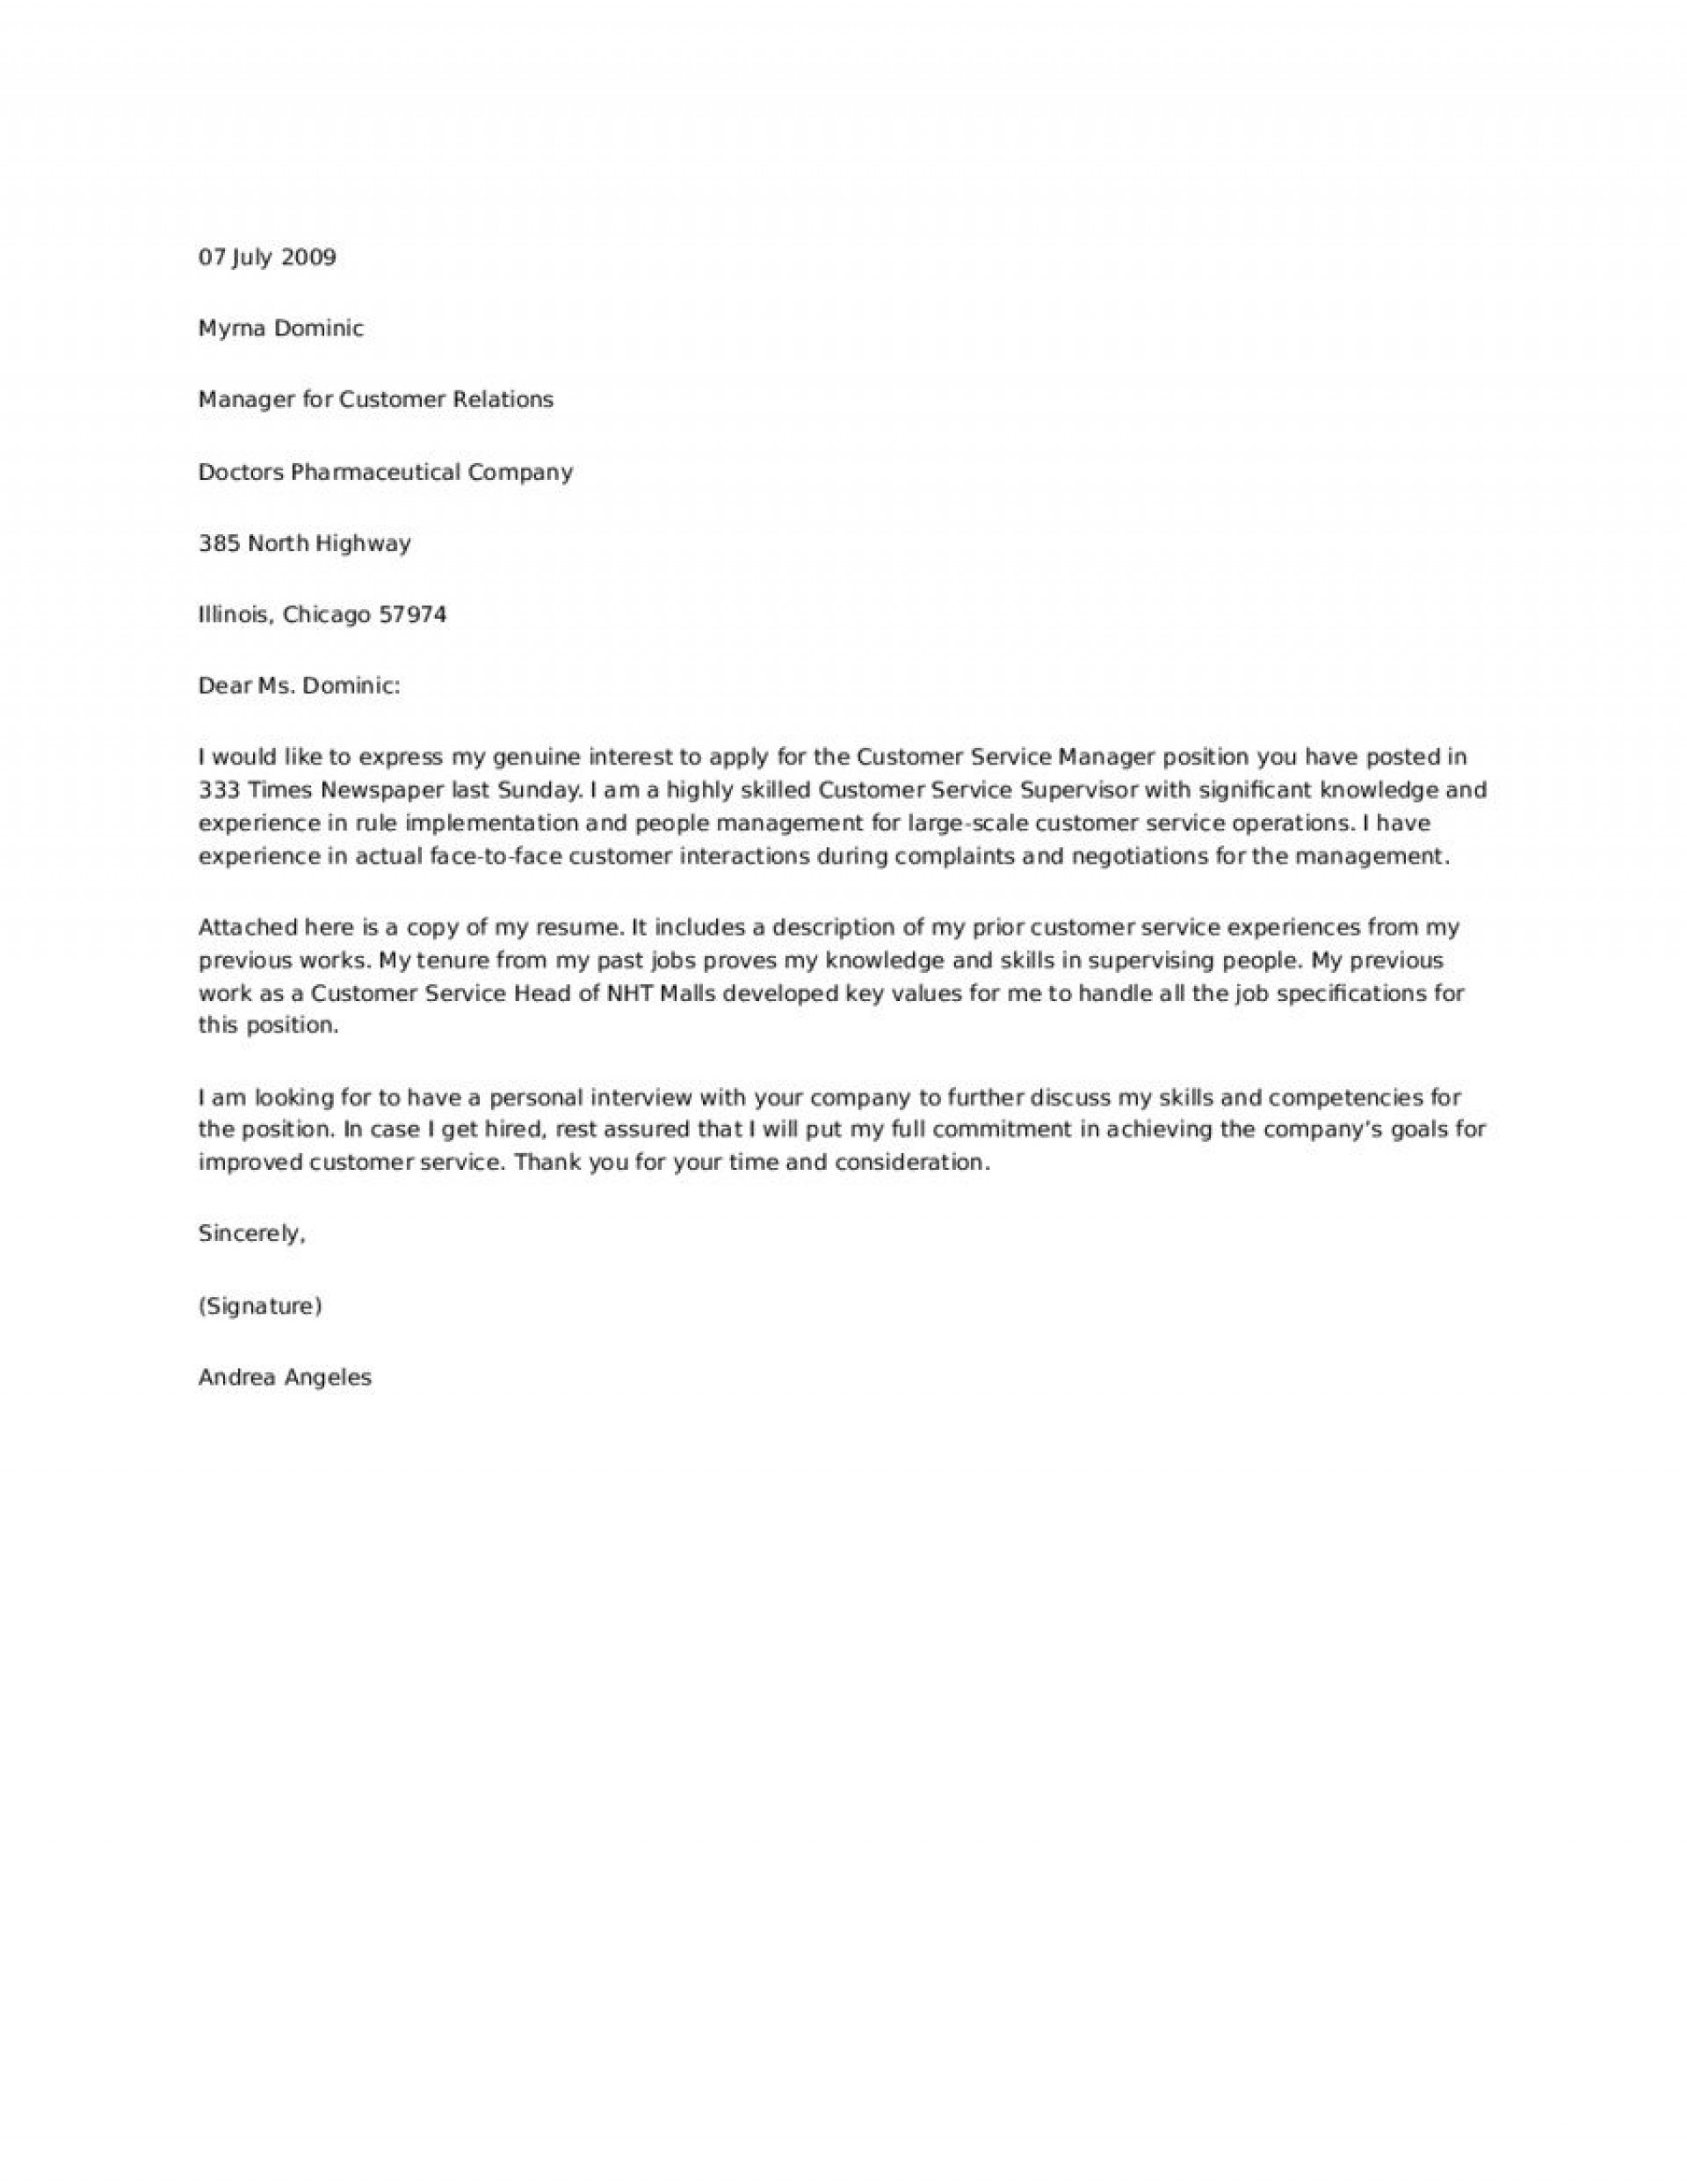 Cover Letter Example For Customer Service from www.addictionary.org